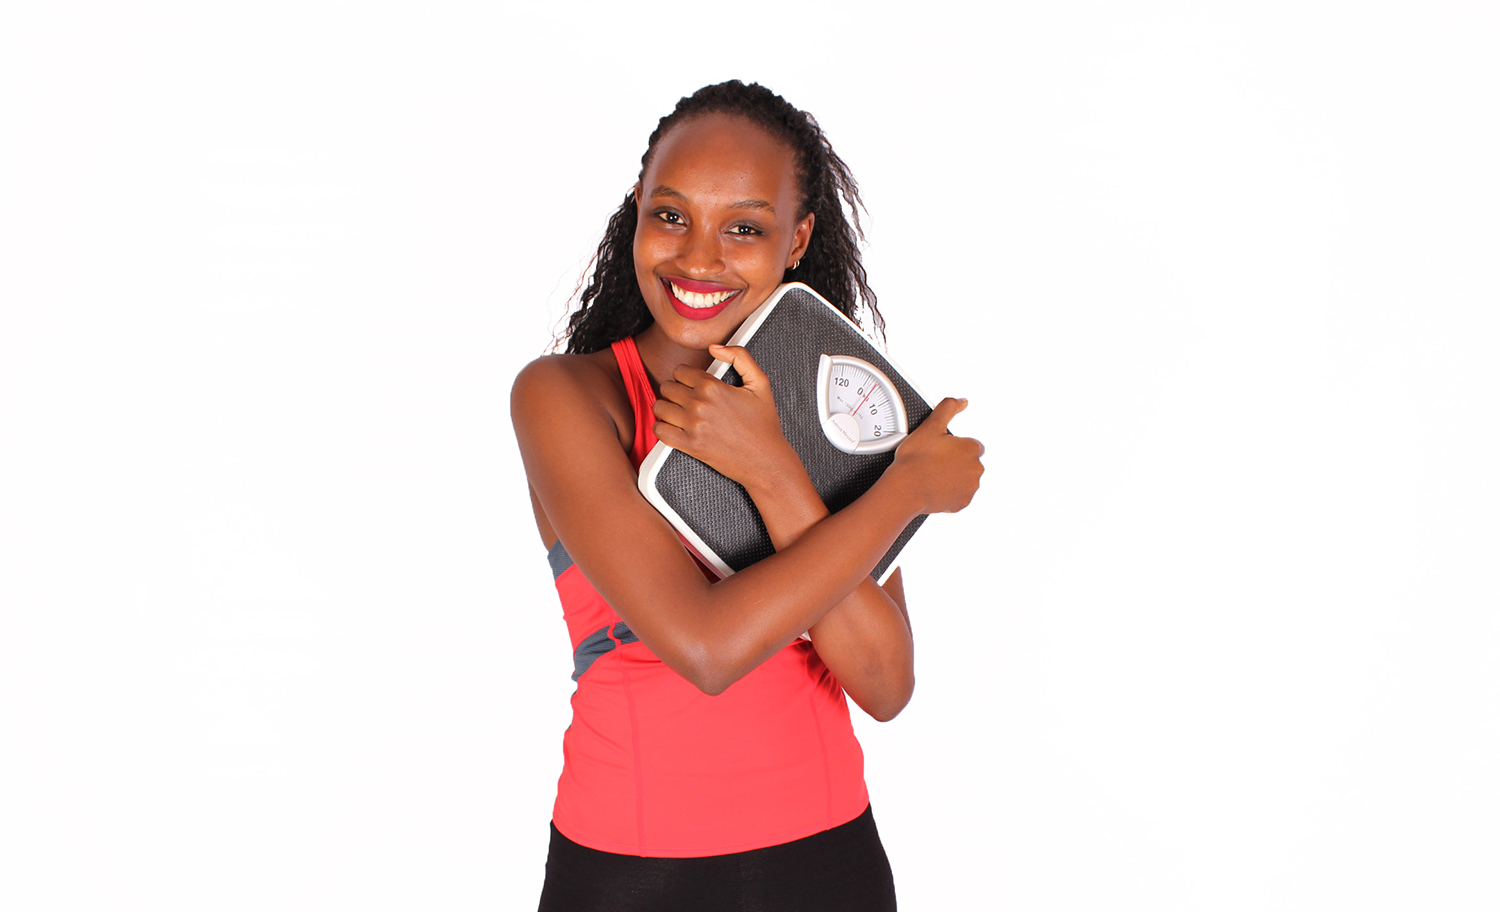 Happy woman hugging weight scale after successful weight loss